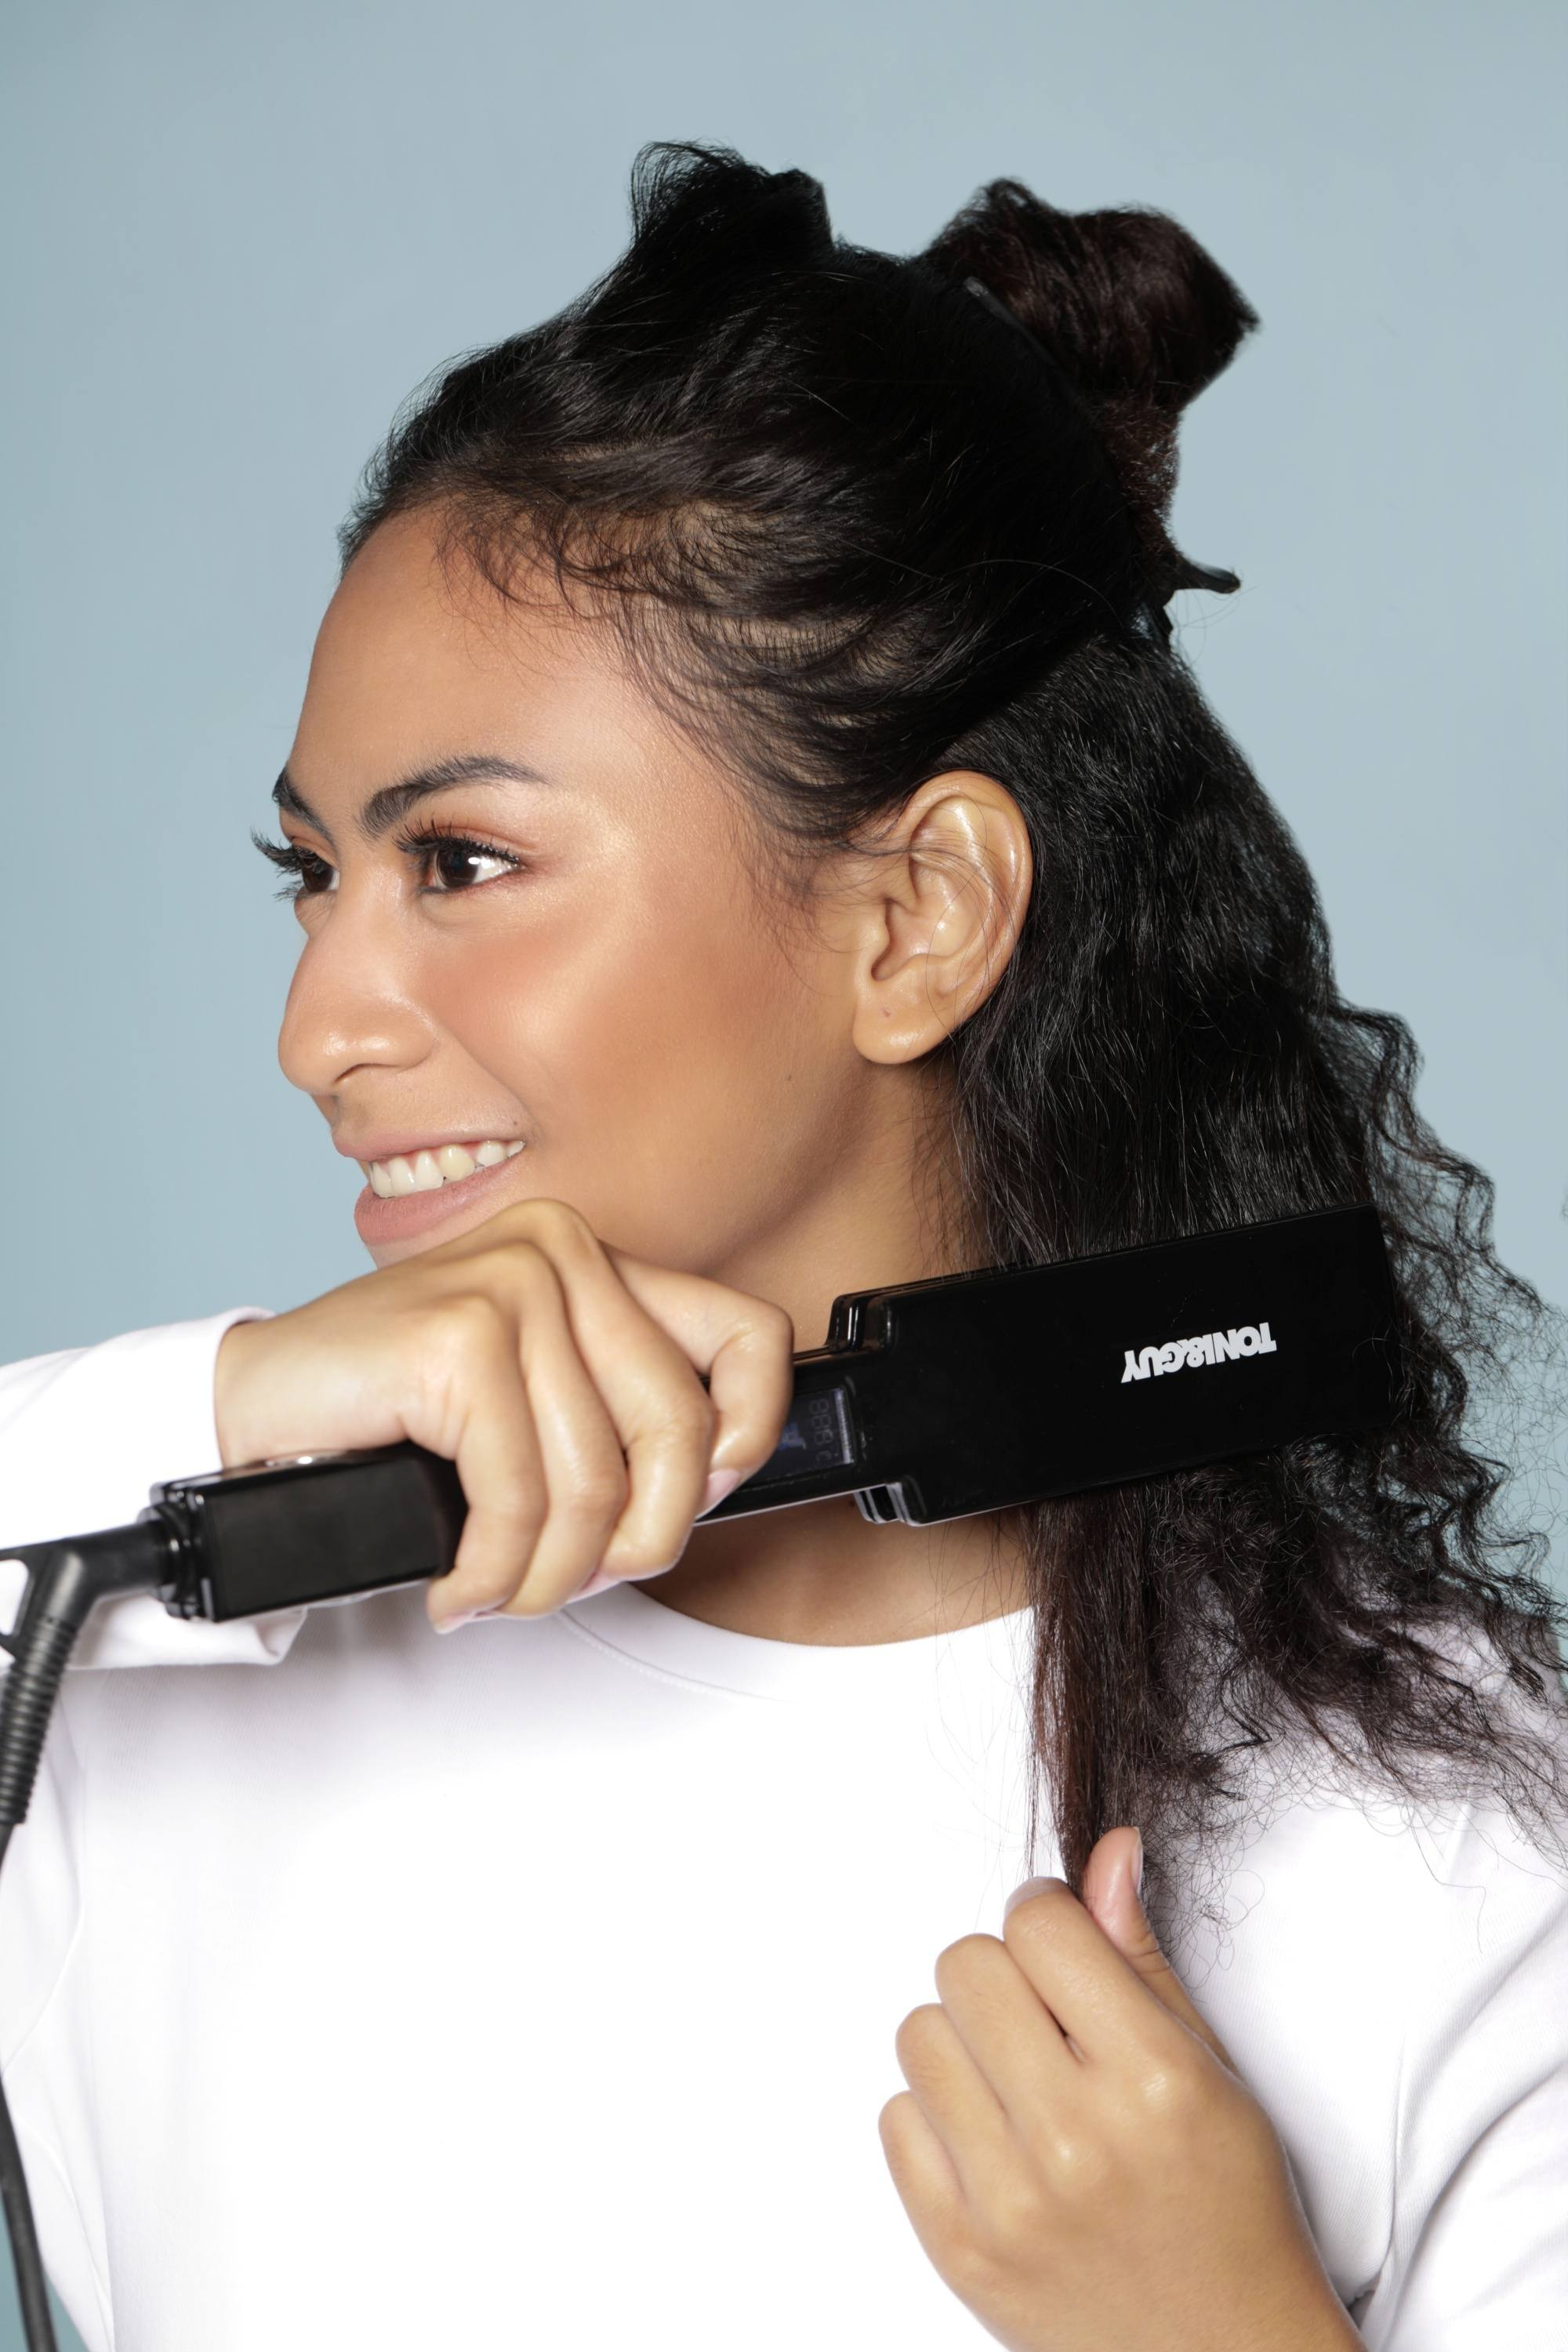 Natural hair straightener:: Asian woman straightening her dark curly hair